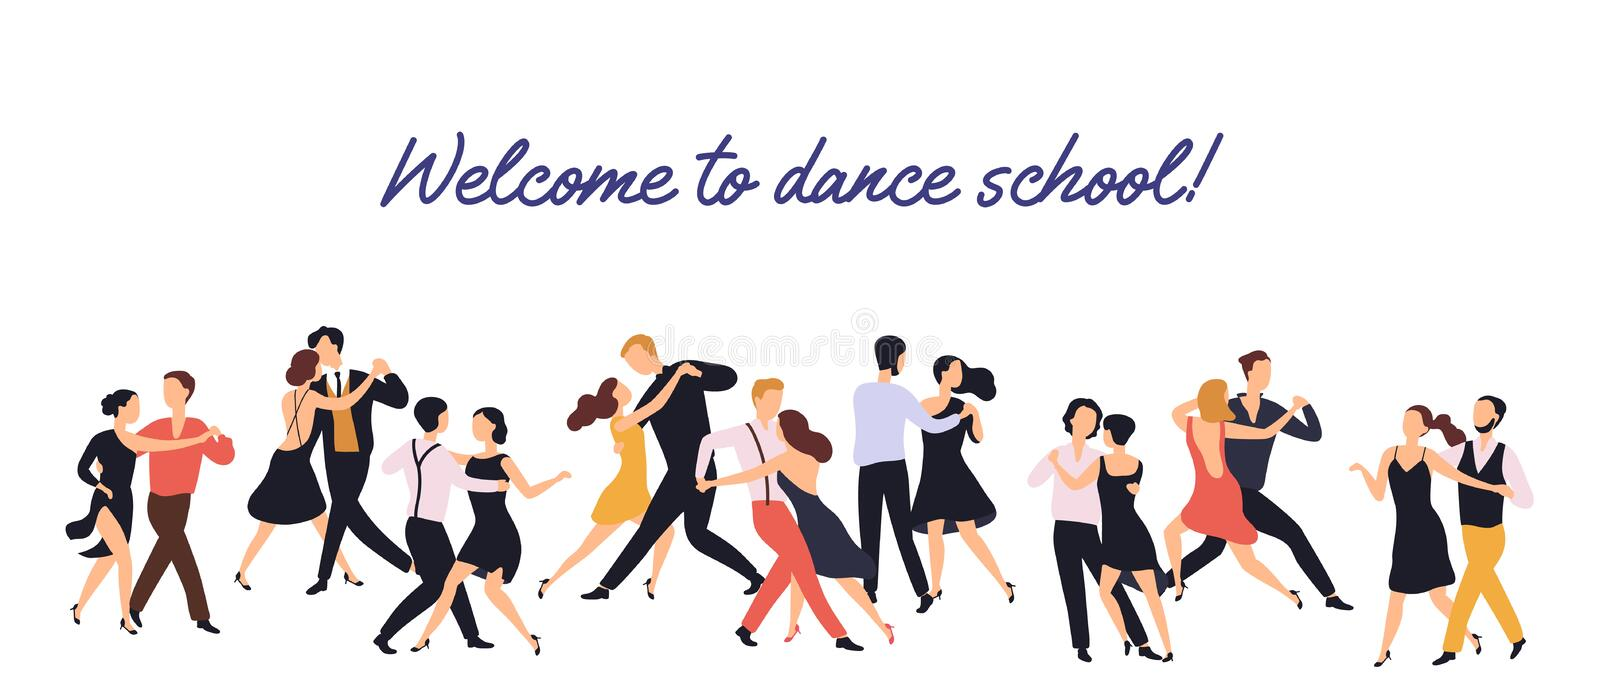 Horizontal banner or backdrop with pairs of elegant men and women dancing tango on white background. Dance school or royalty free illustration